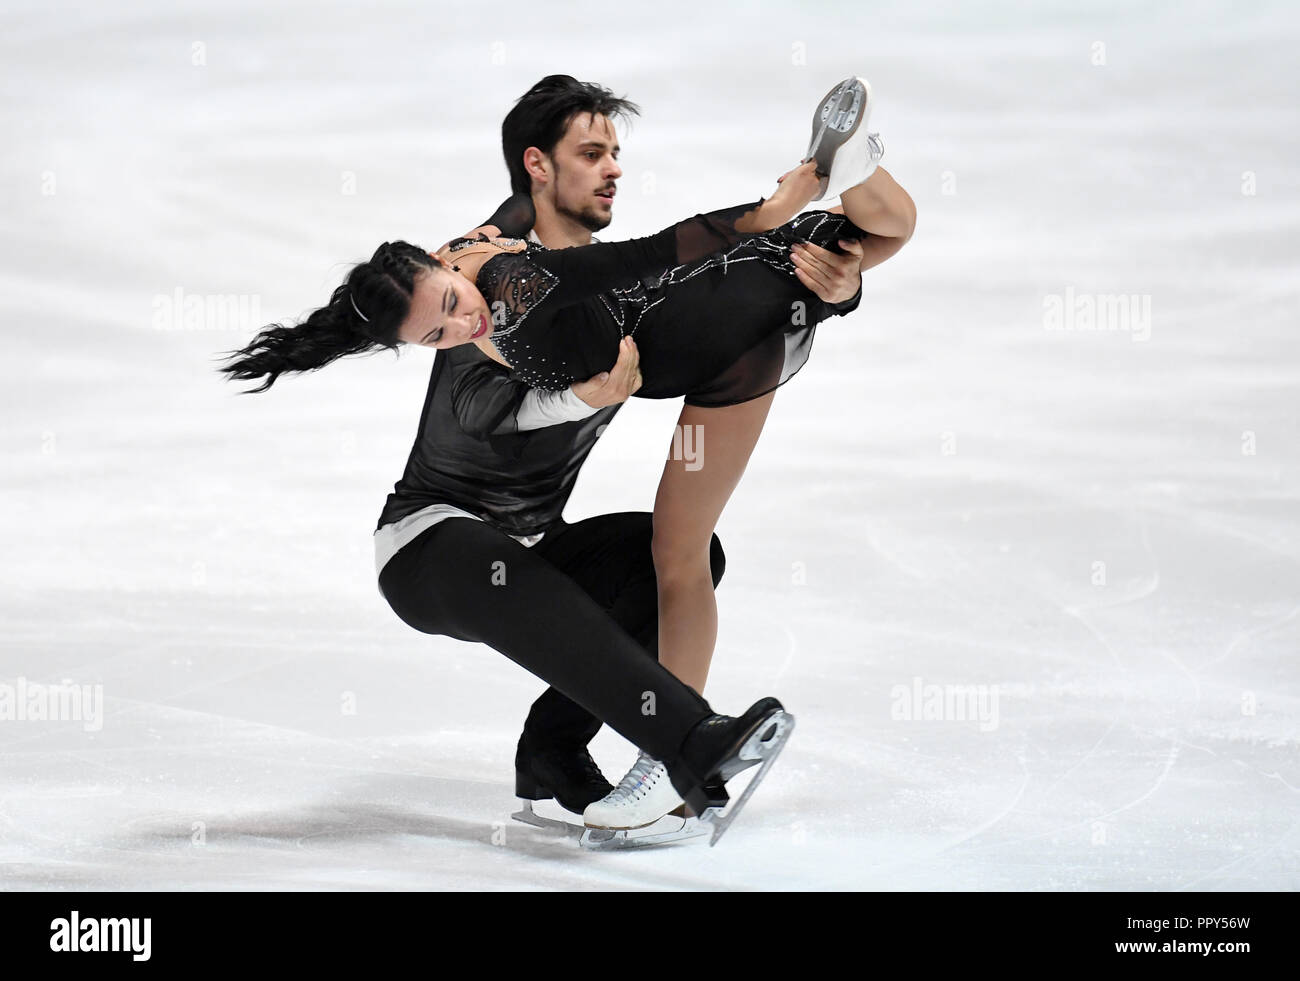 figure skating urban dictionary